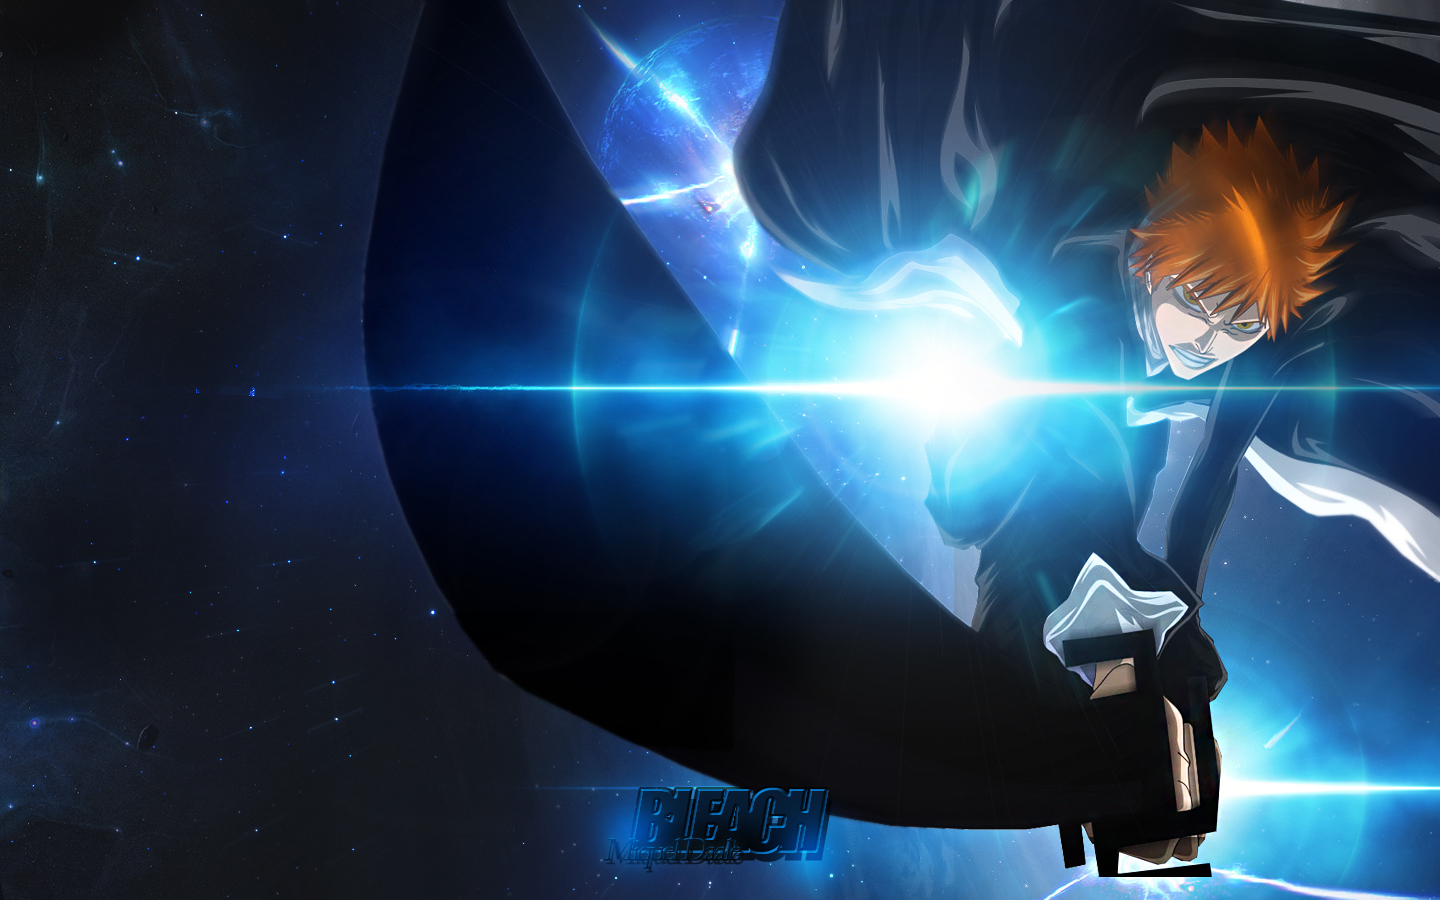 bleach wallpaper awesome - photo #12